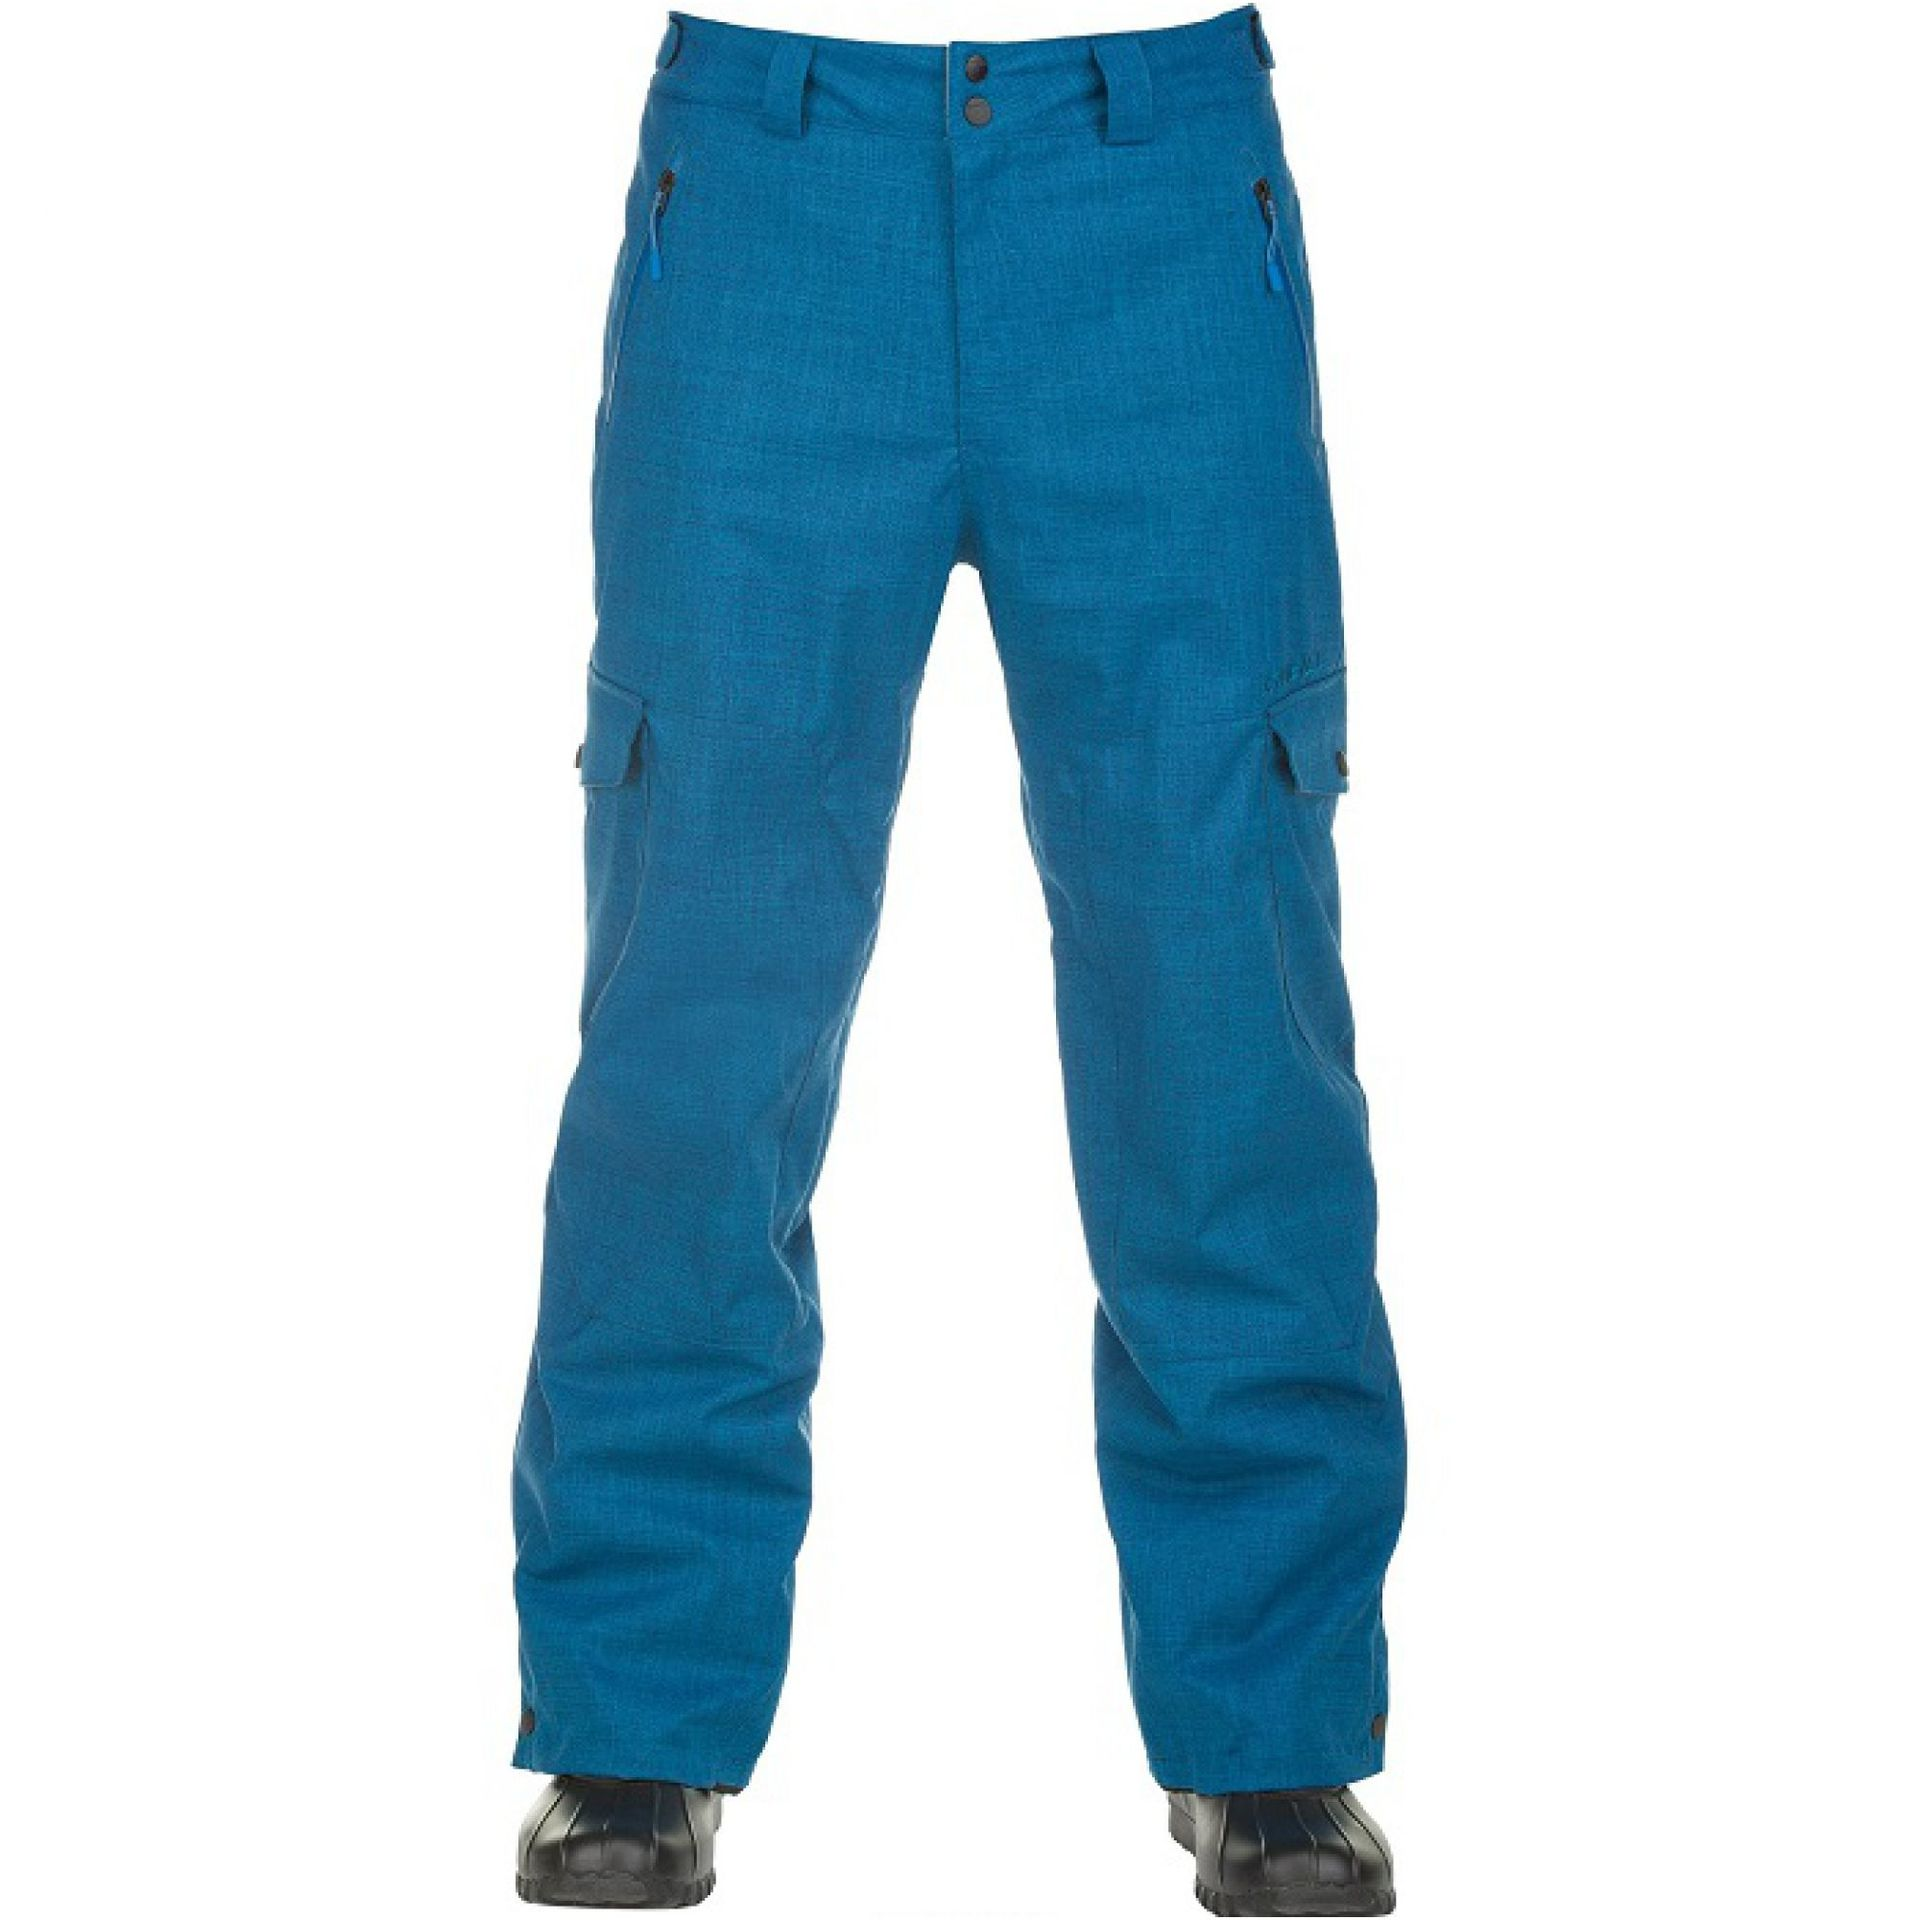 SPODNIE ONEILL QUEUE PANT